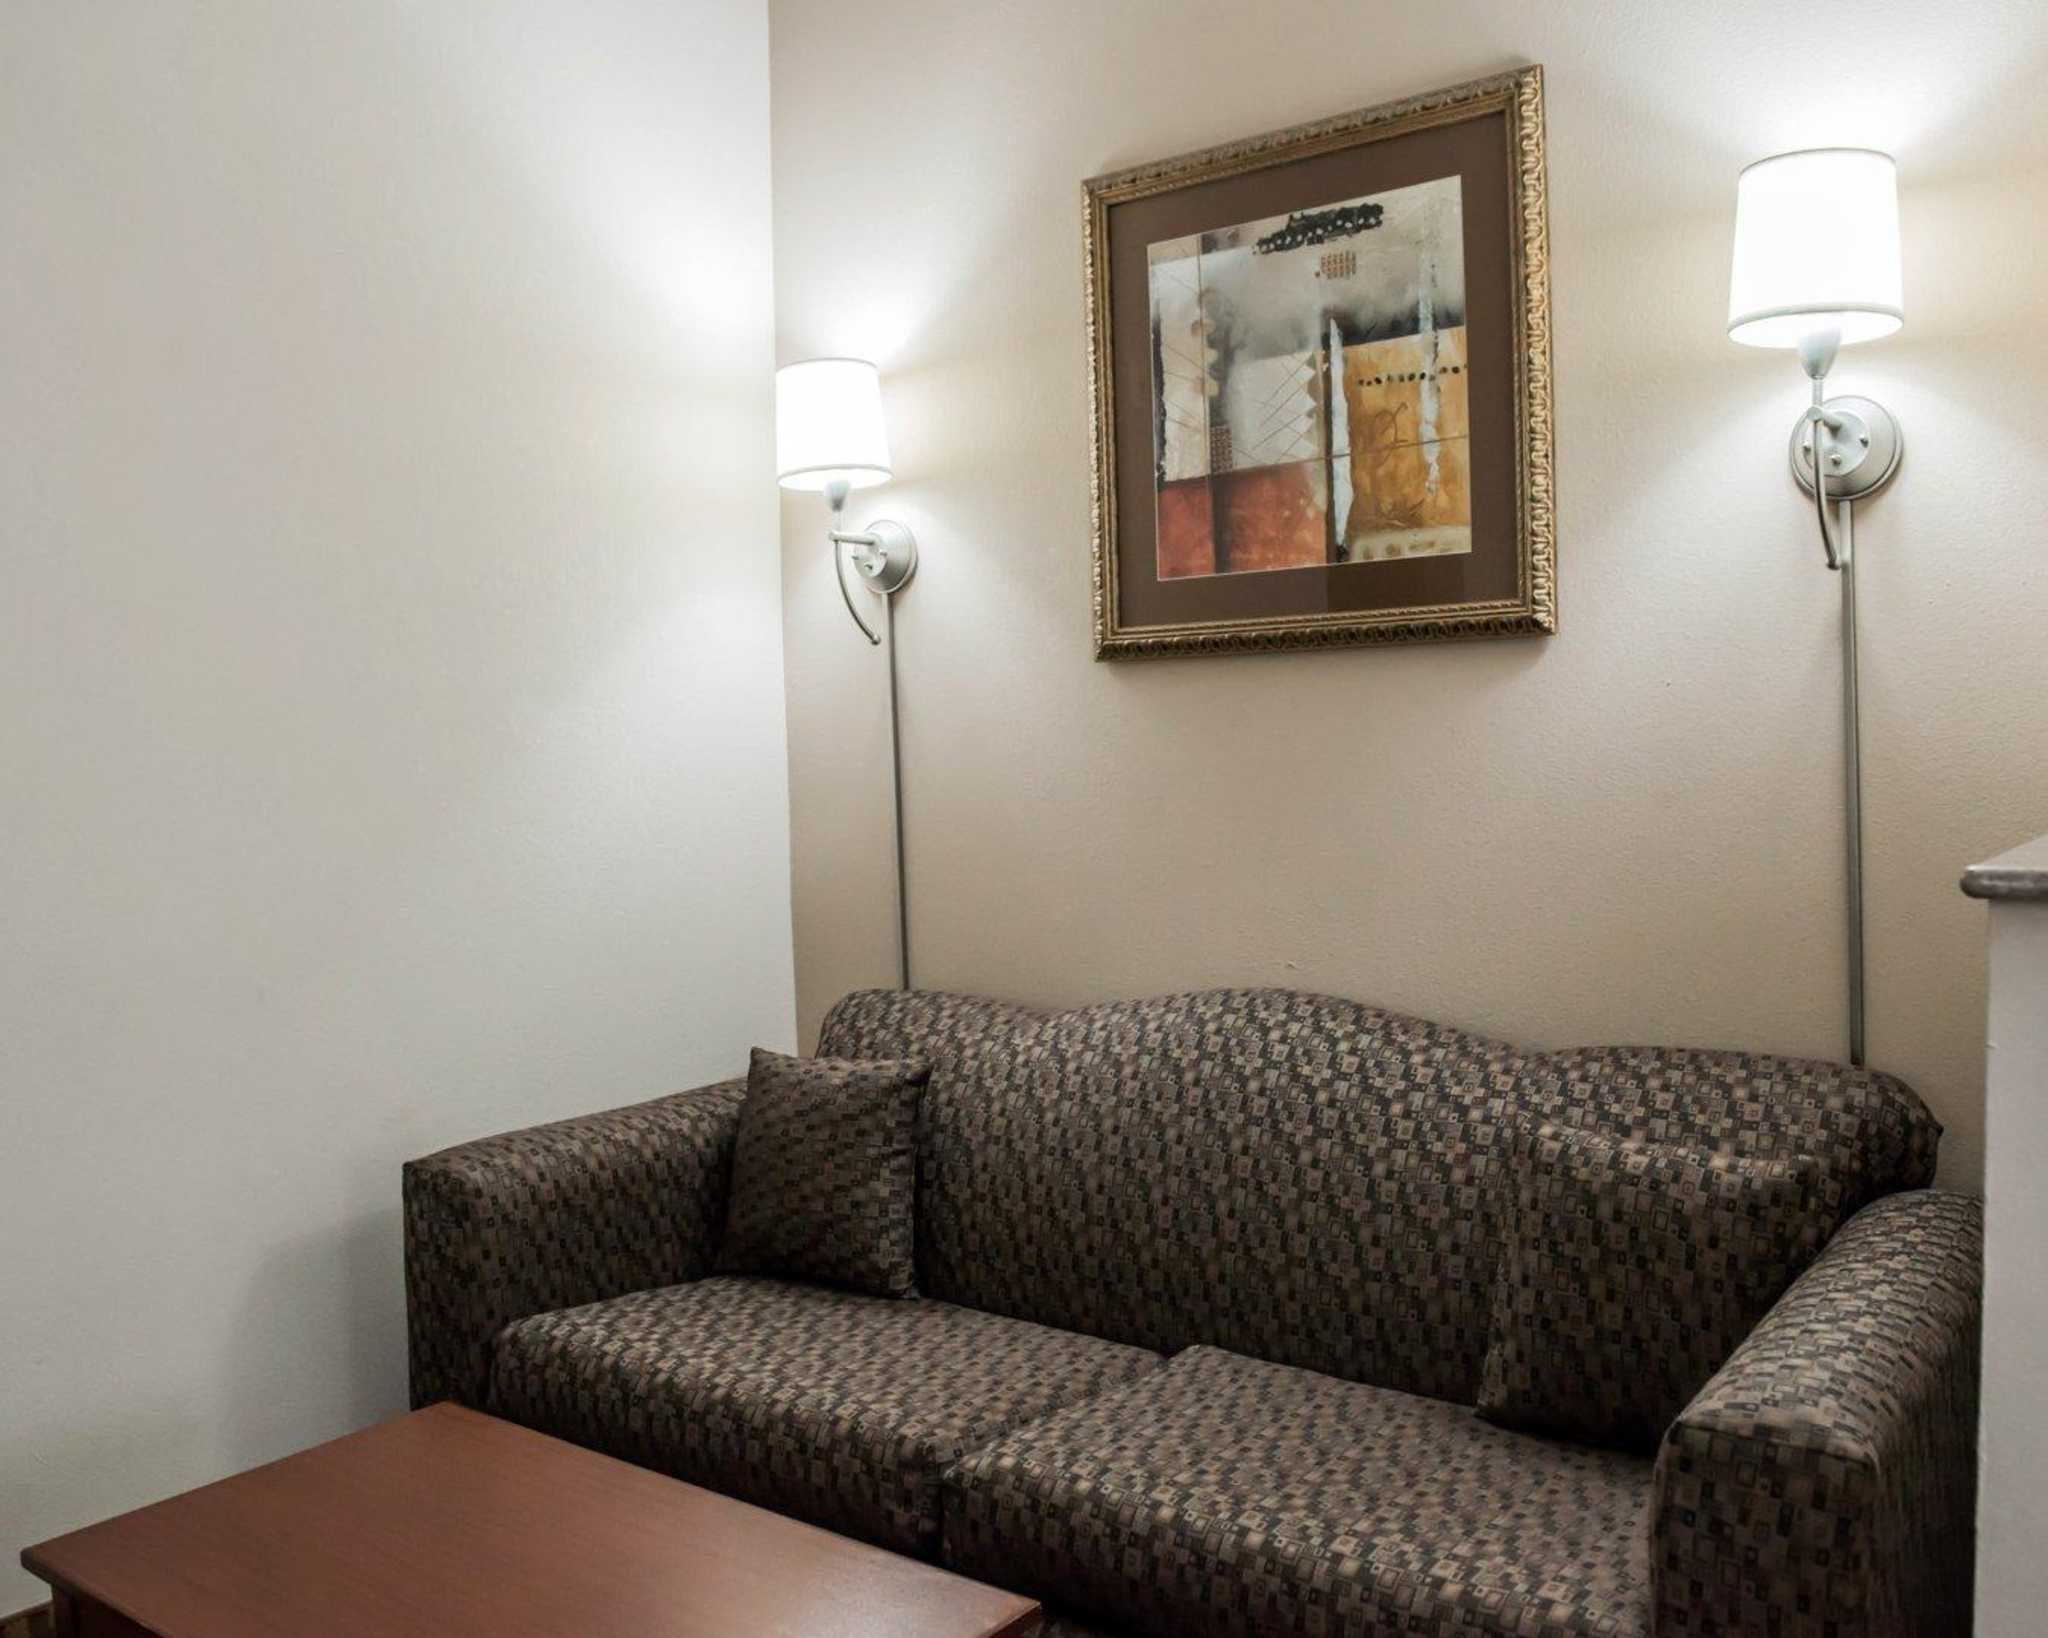 Comfort Inn & Suites Midway - Tallahassee West image 26